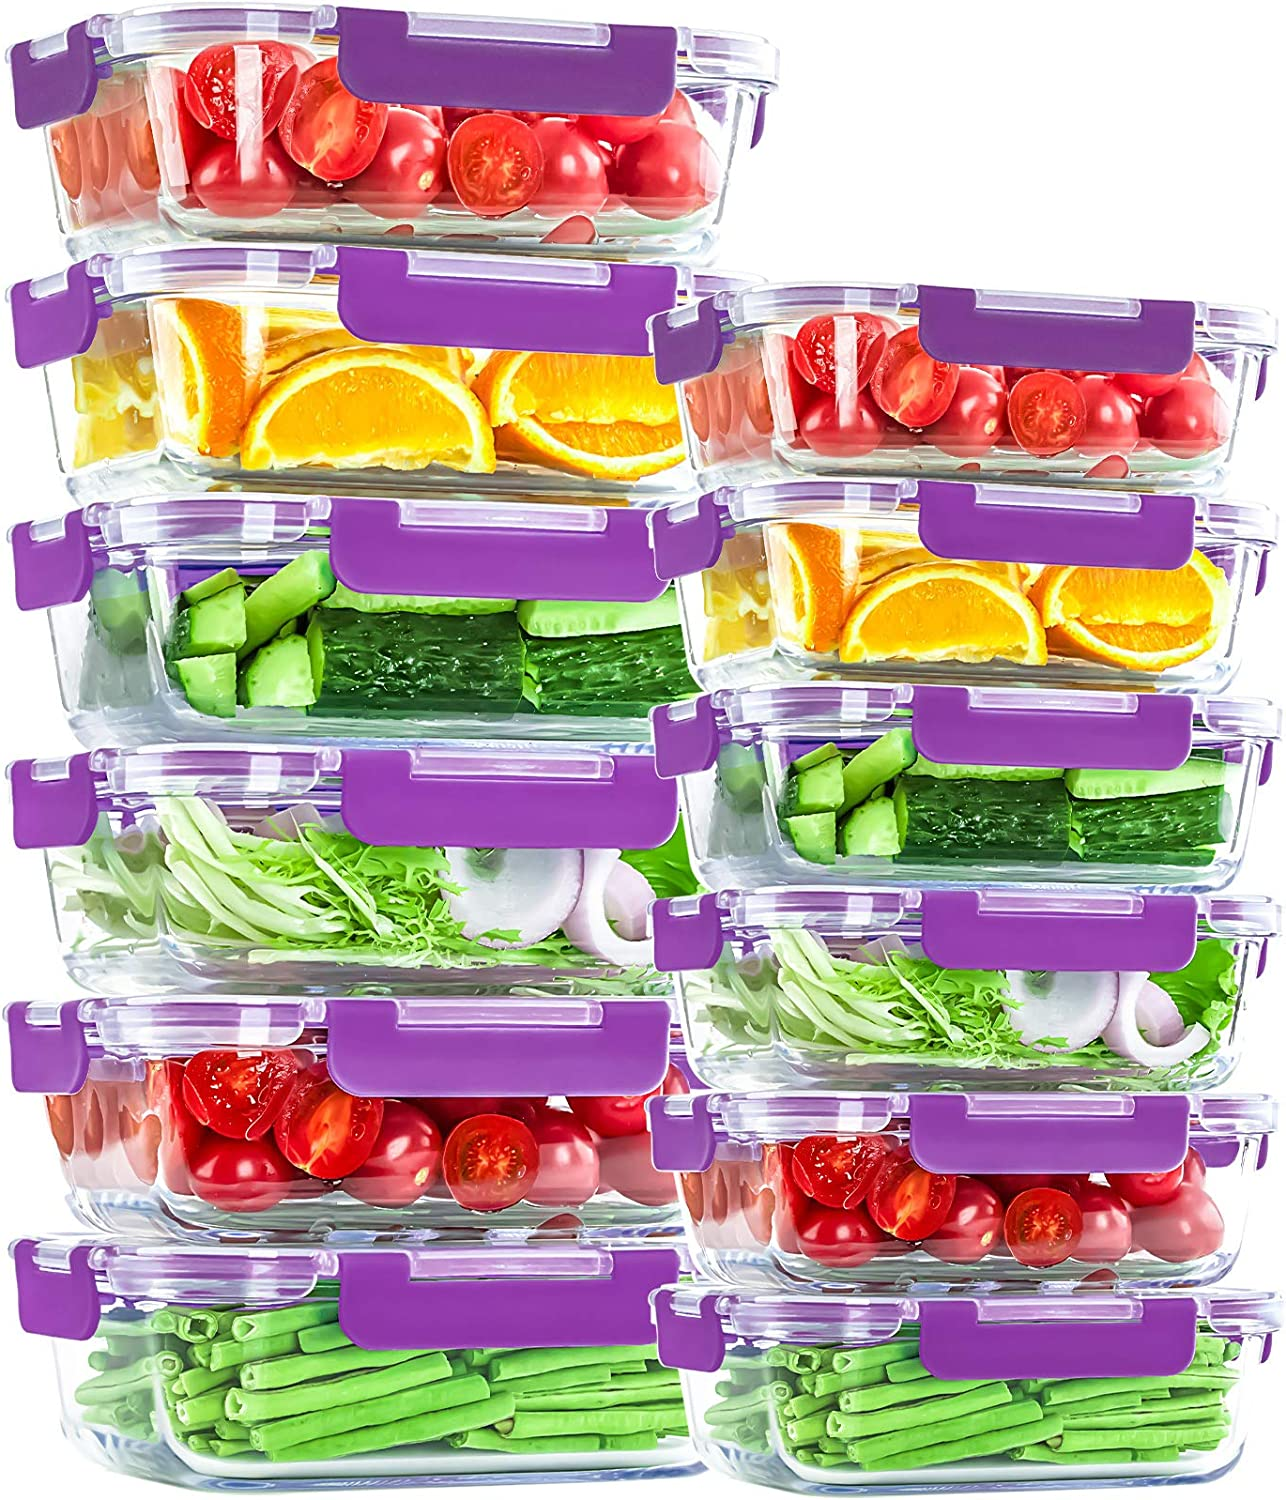 Glass Food Storage Containers with Airtight Lids 24 Pieces [12 containers with lids] Microwave/Oven/Freezer & Dishwasher Safe